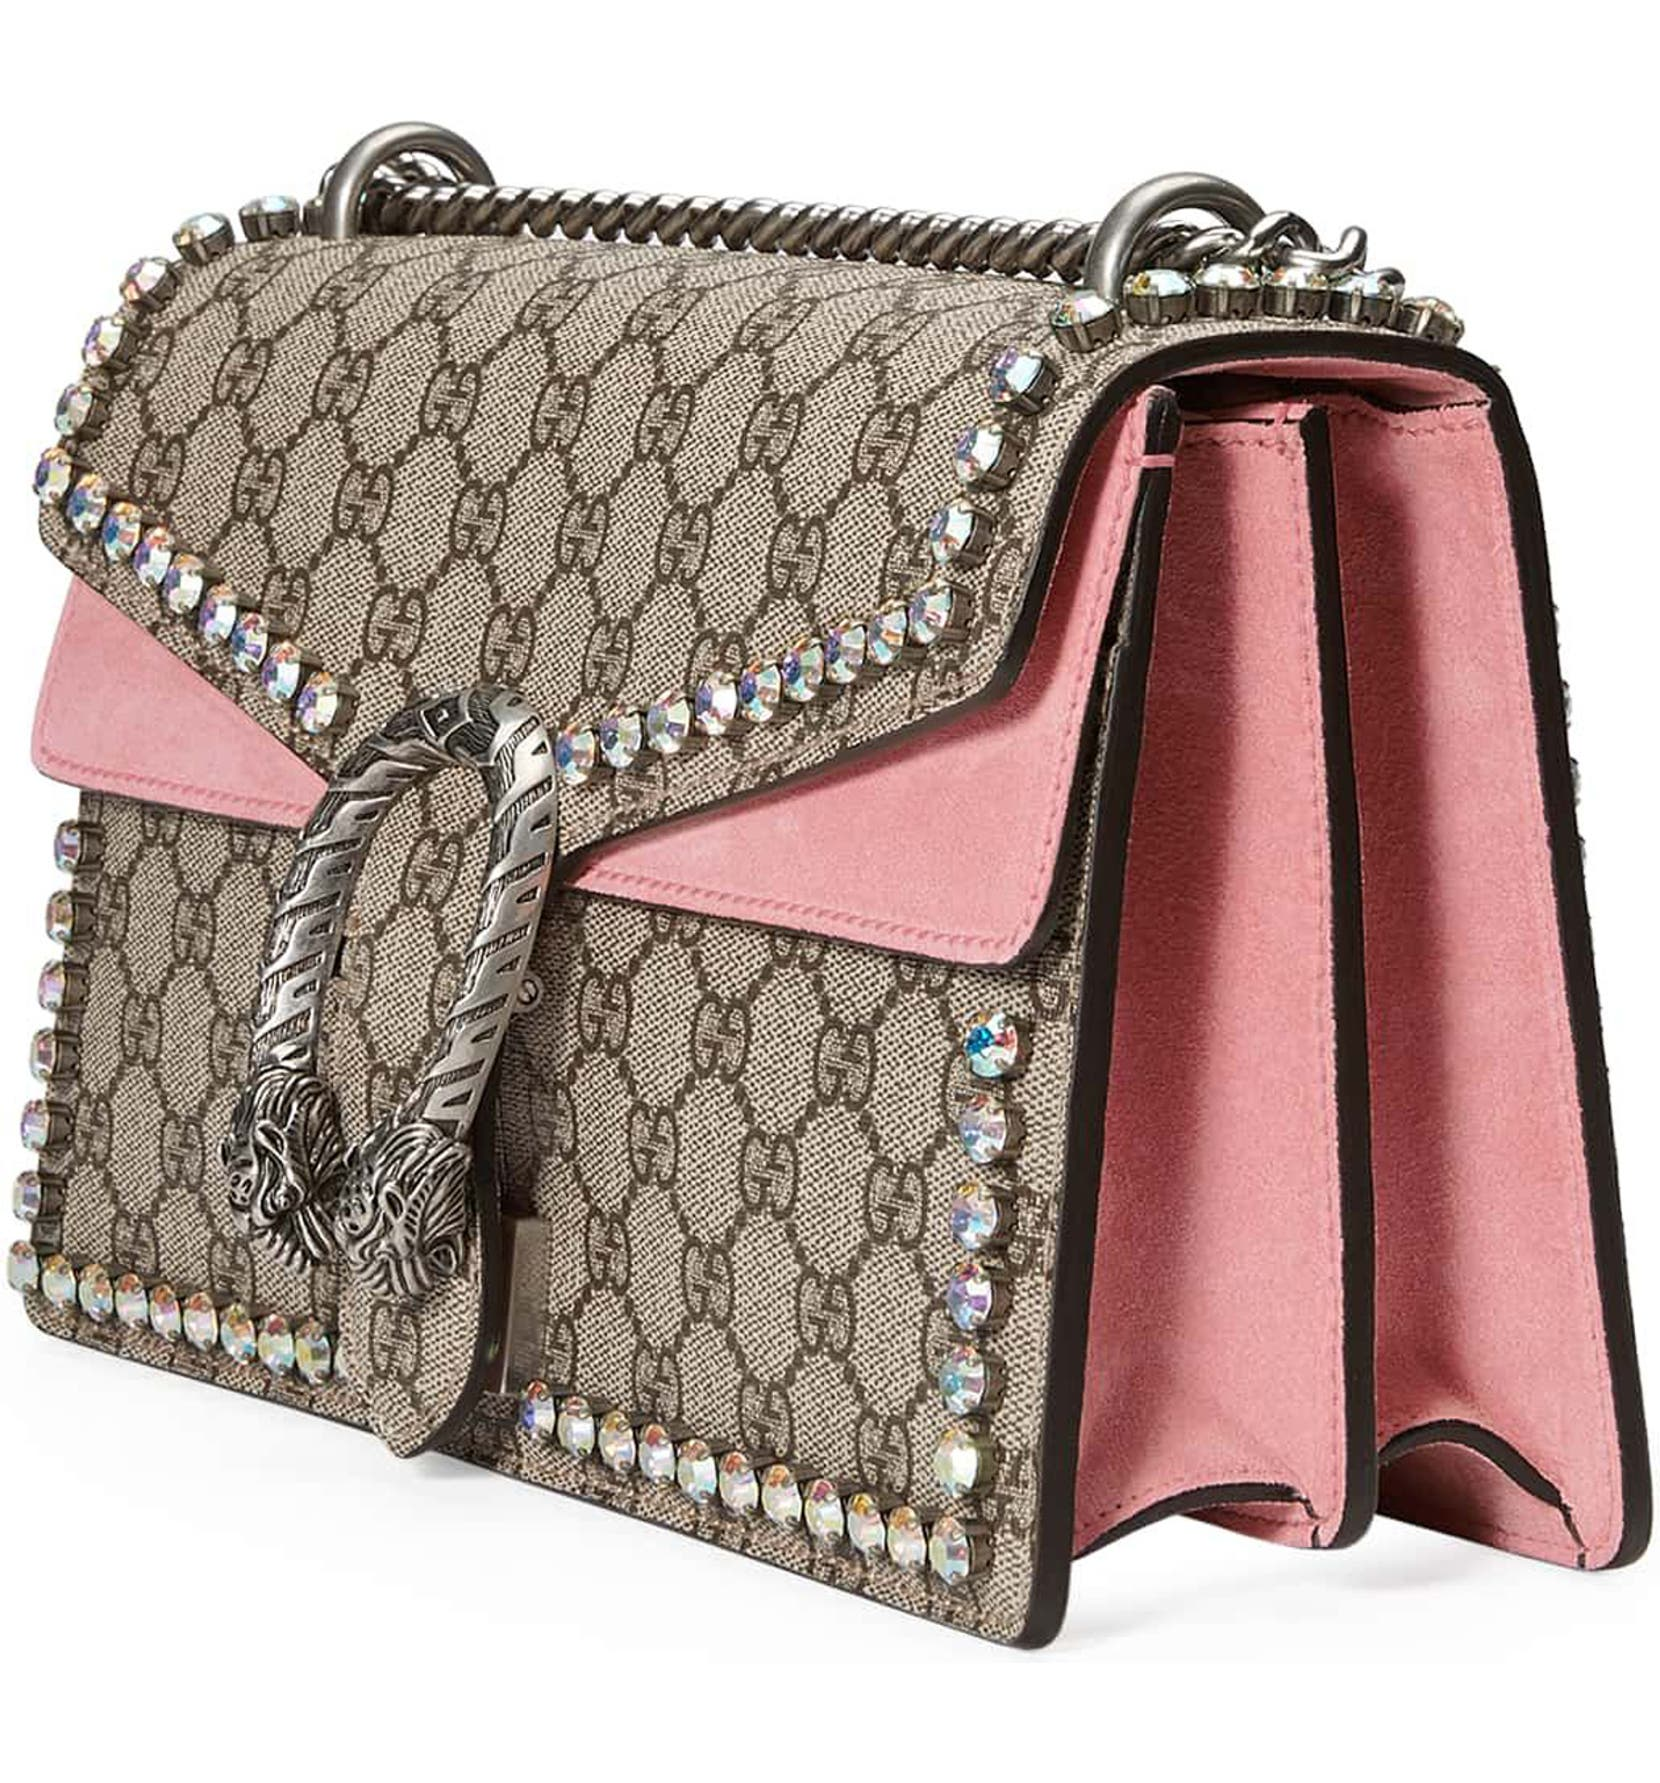 b8f70daf1d5 Gucci Small Dionysus Crystal Embellished GG Supreme Canvas   Suede Shoulder  Bag